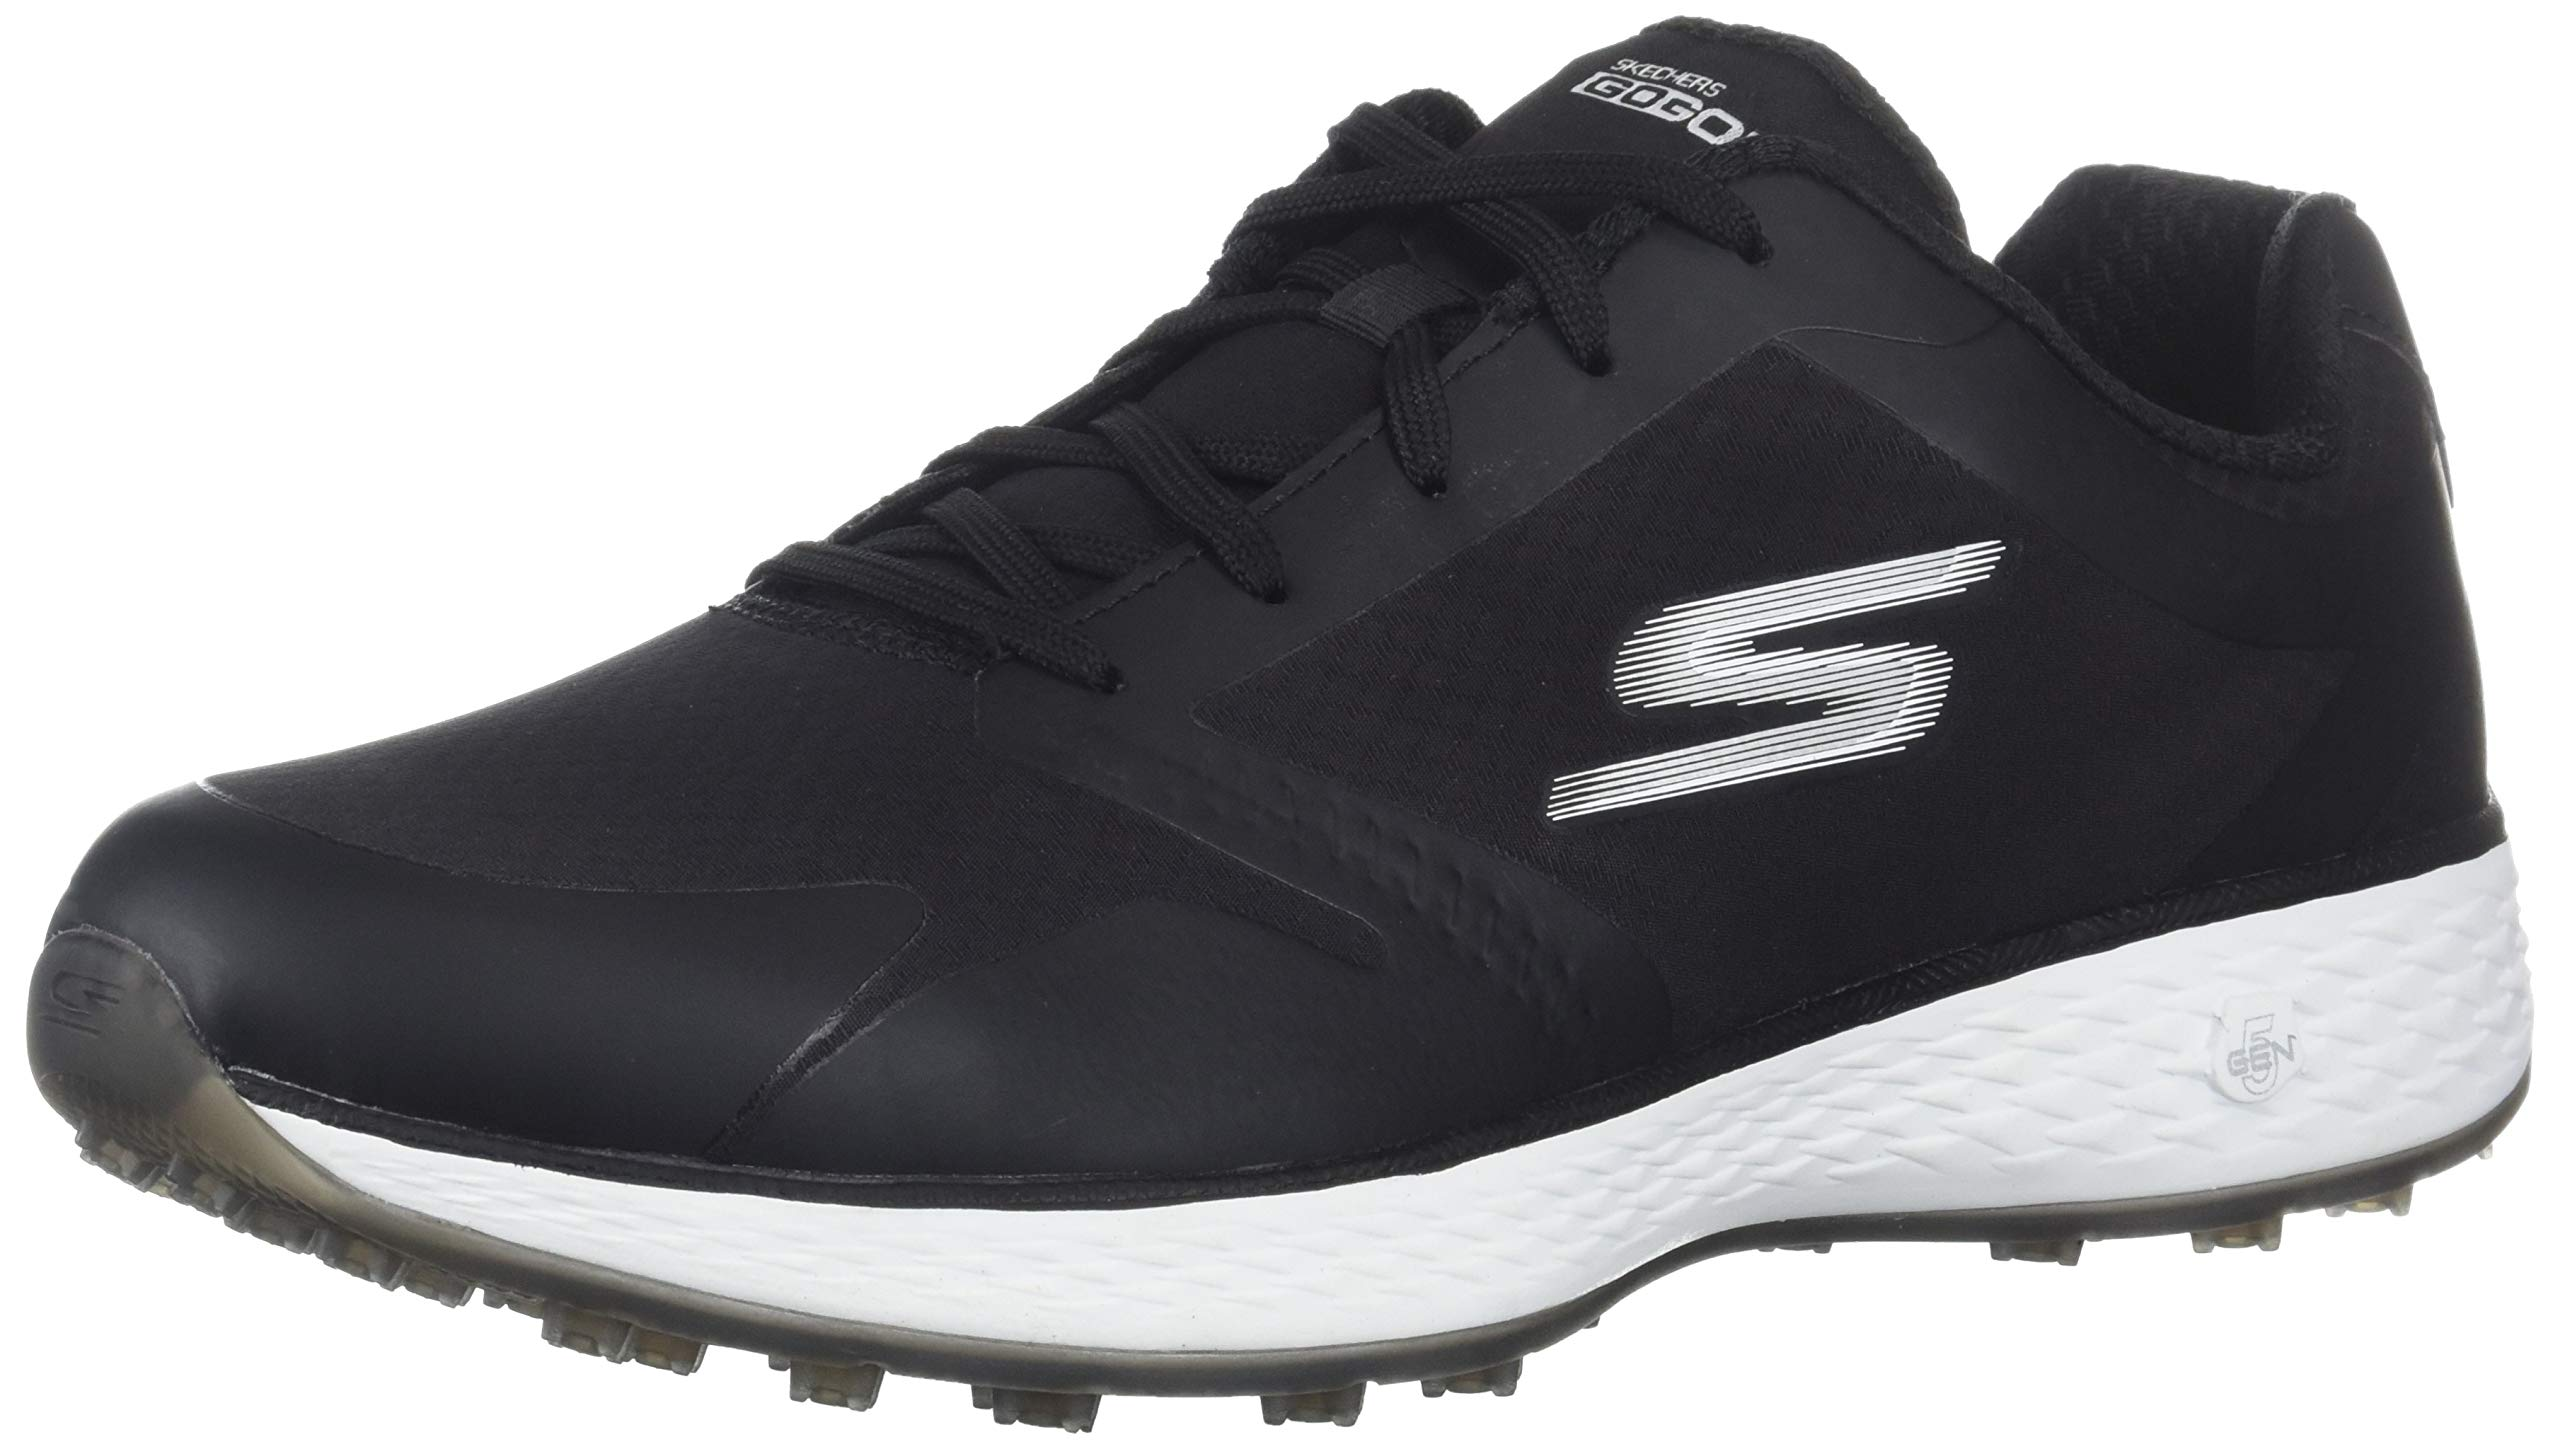 Skechers Women's Eagle Relaxed Fit Golf Shoe, Black/White, 8.5 M US